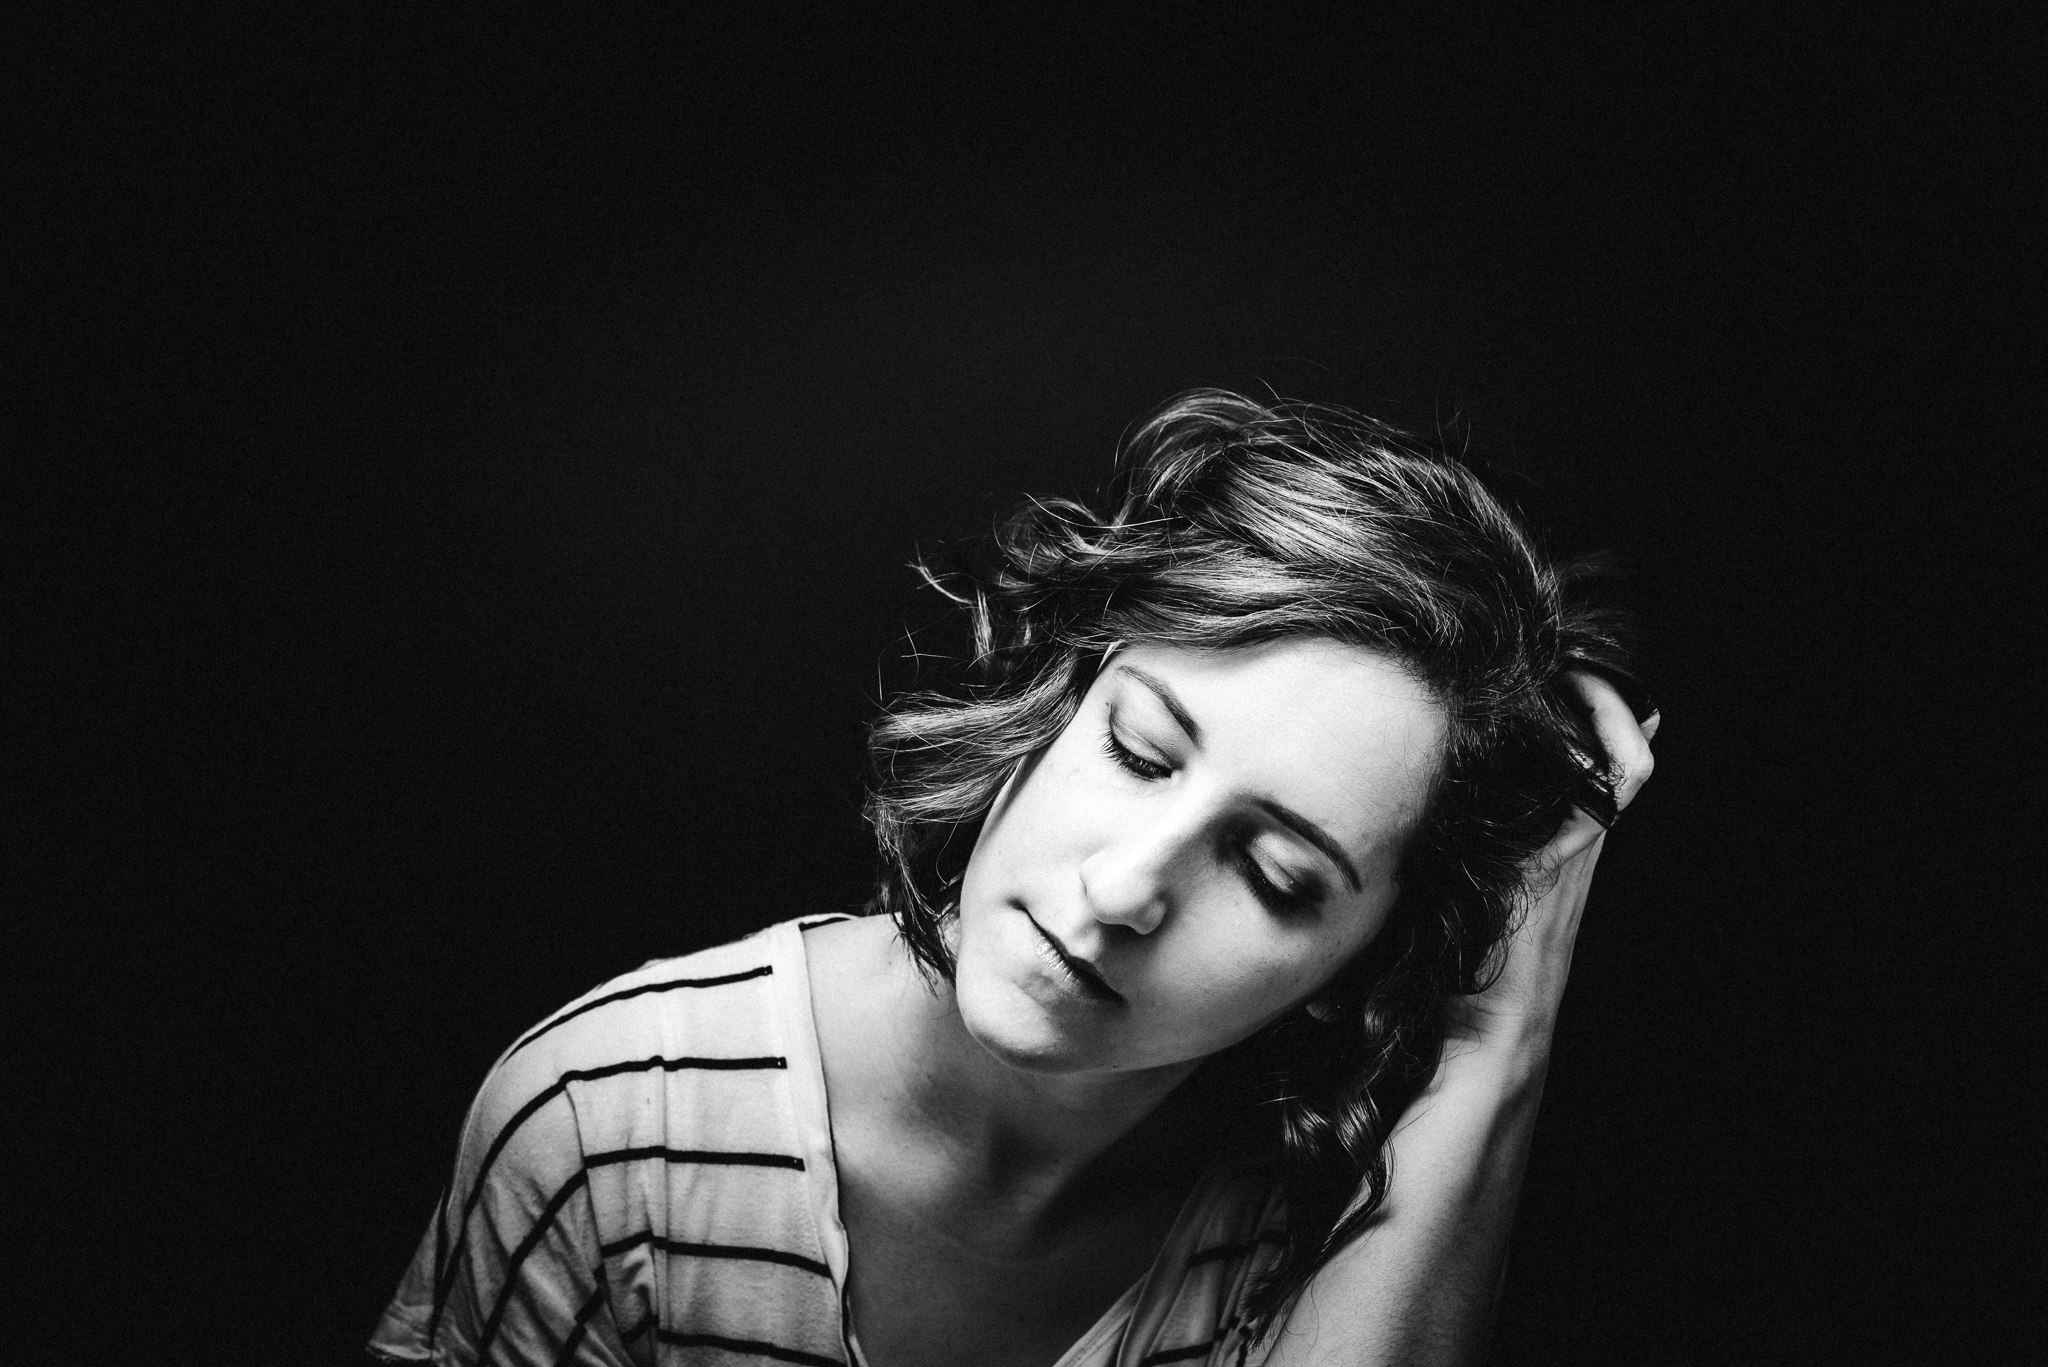 woman in black and white portrait